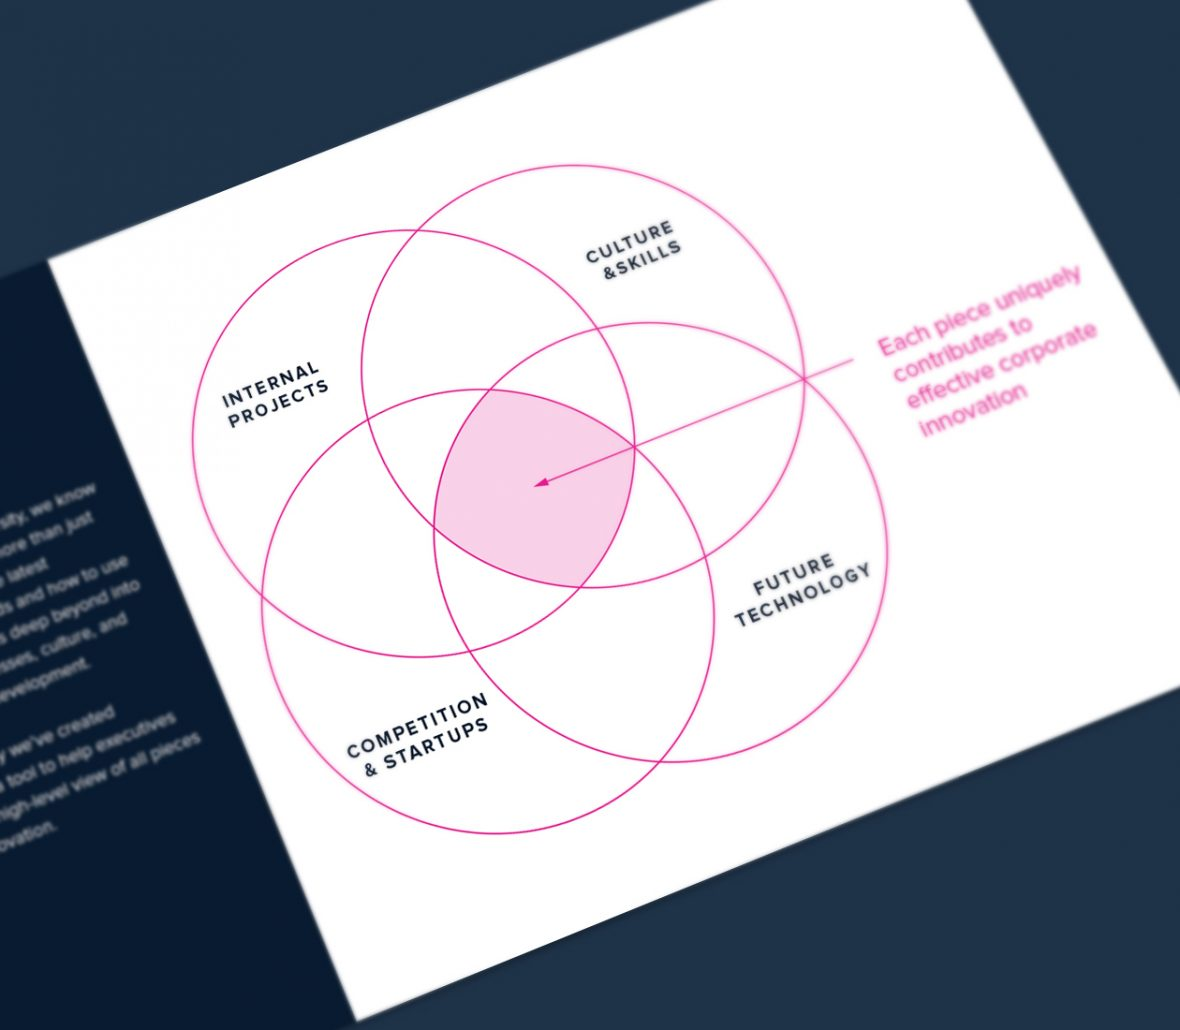 Venn diagram showing that innovation is made up of multiple parts